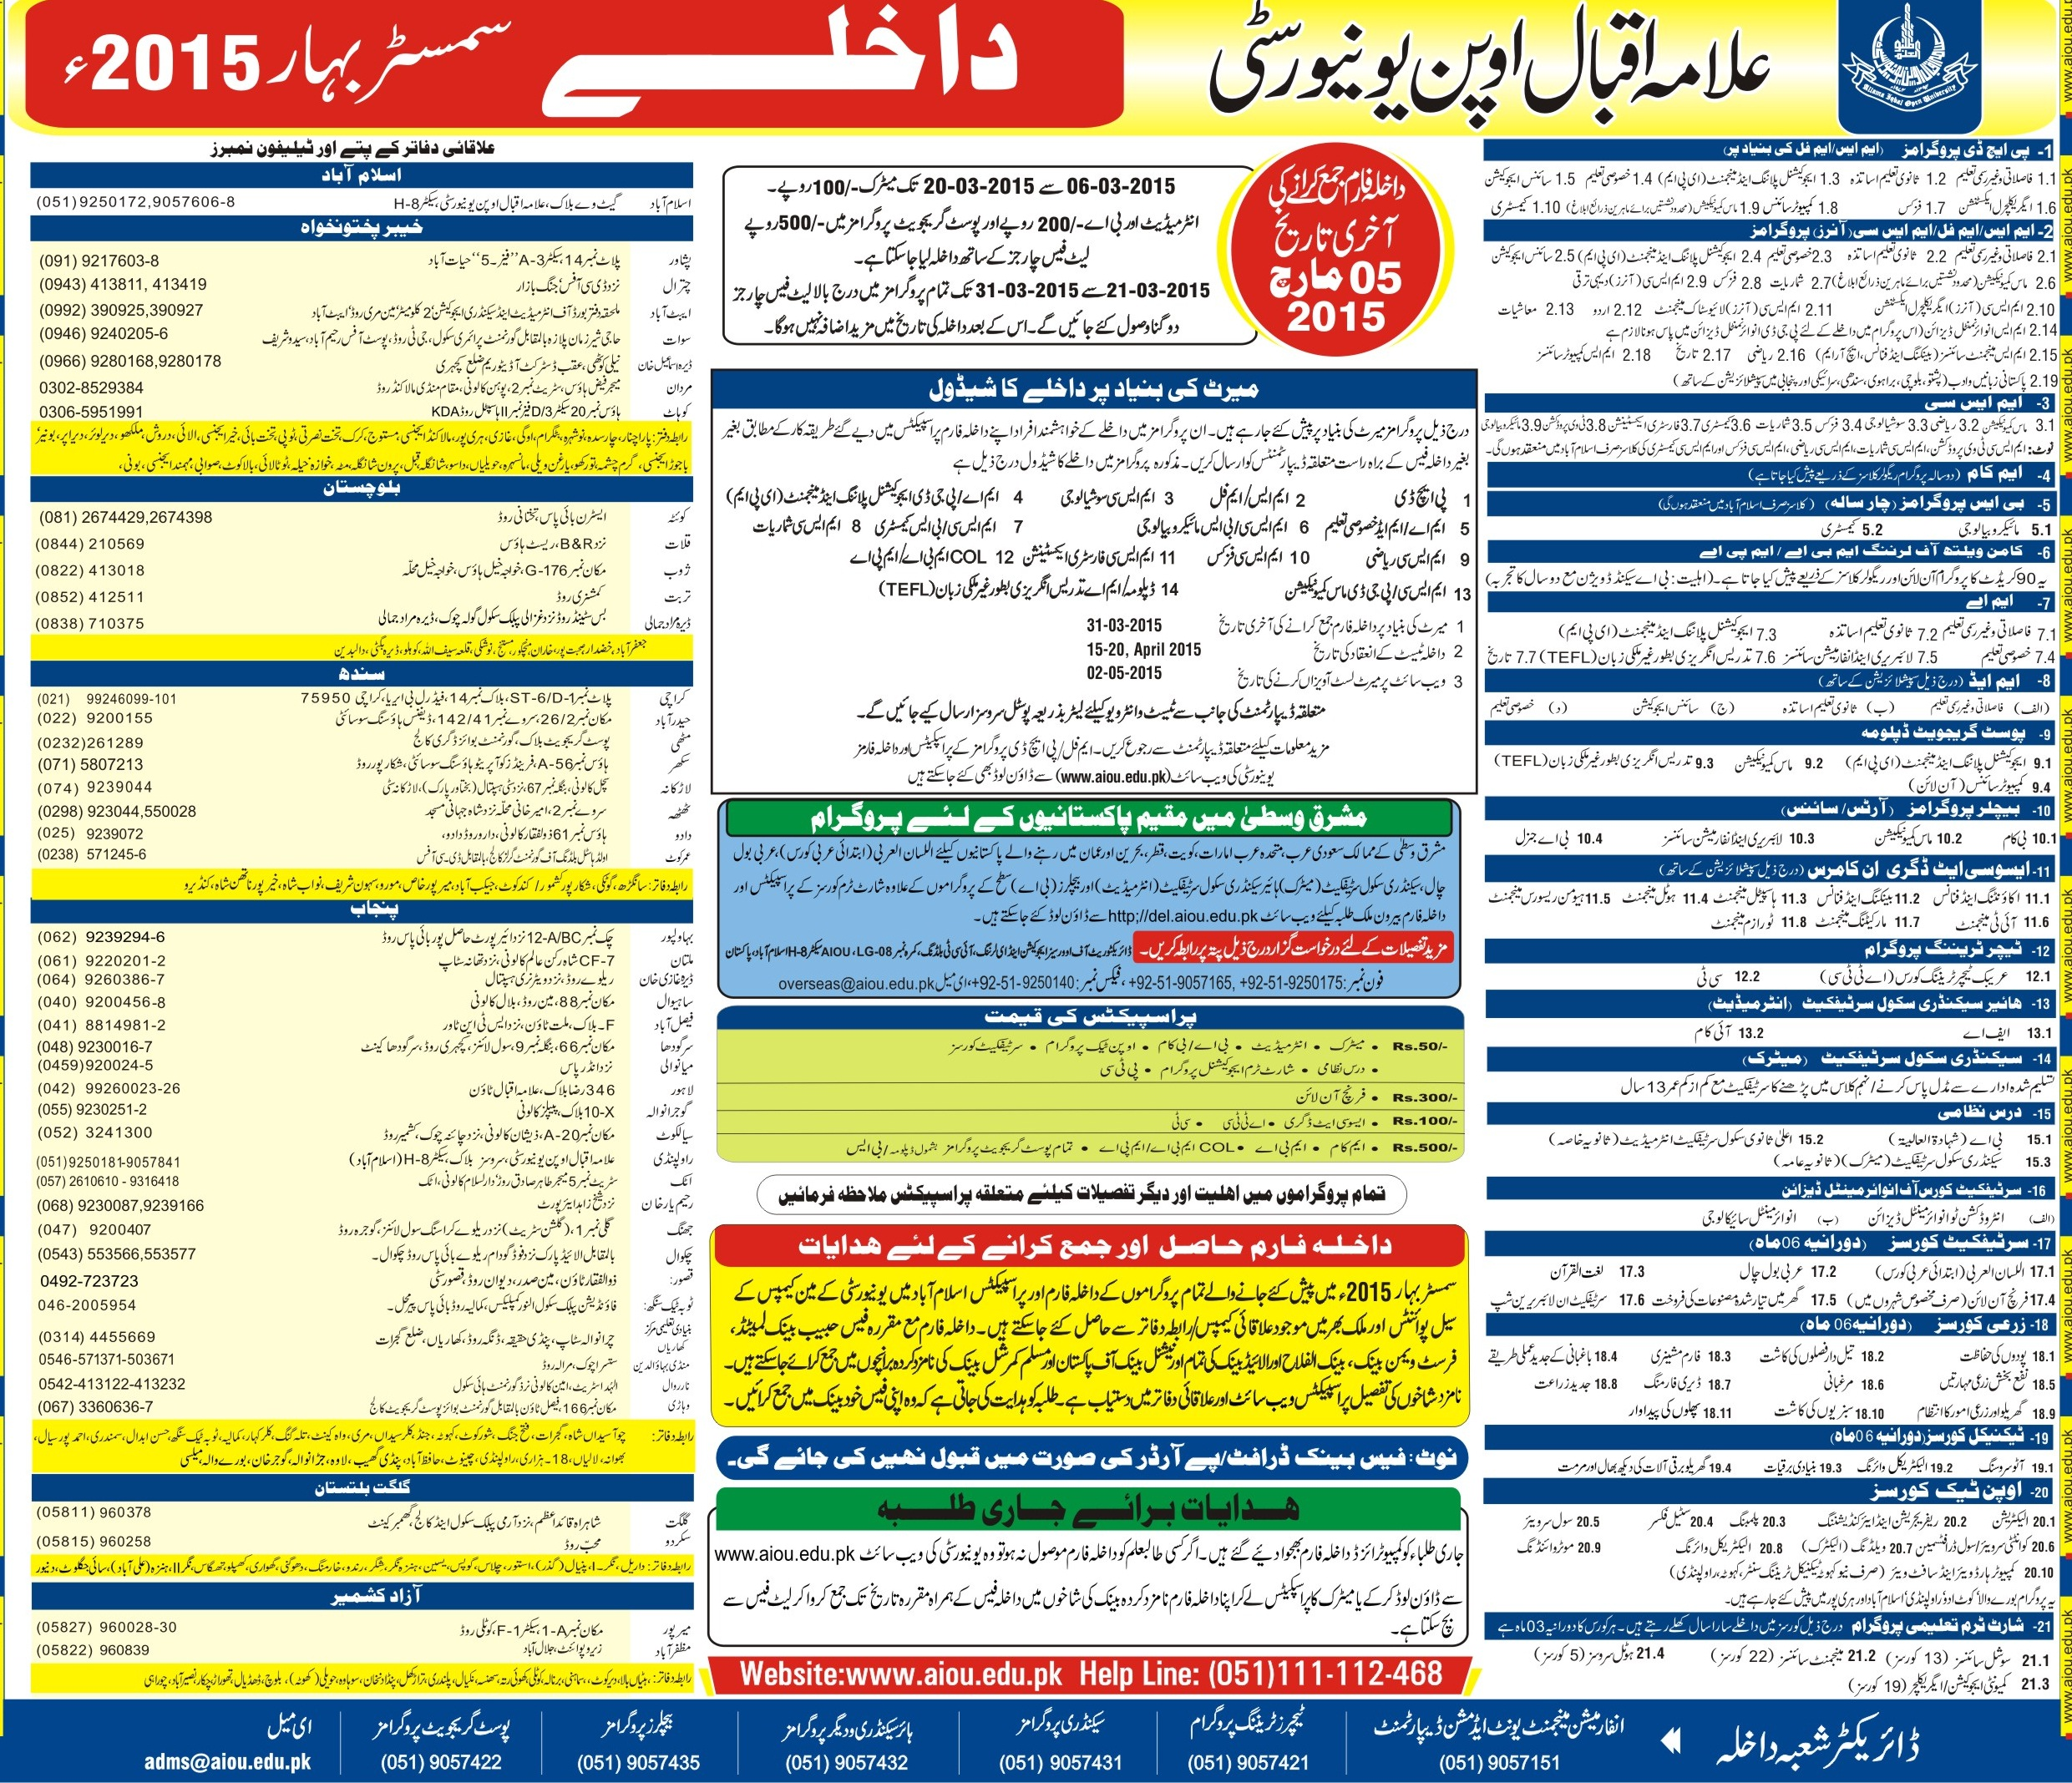 Allama Iqbal Open University Islamabad Spring Admission 2015